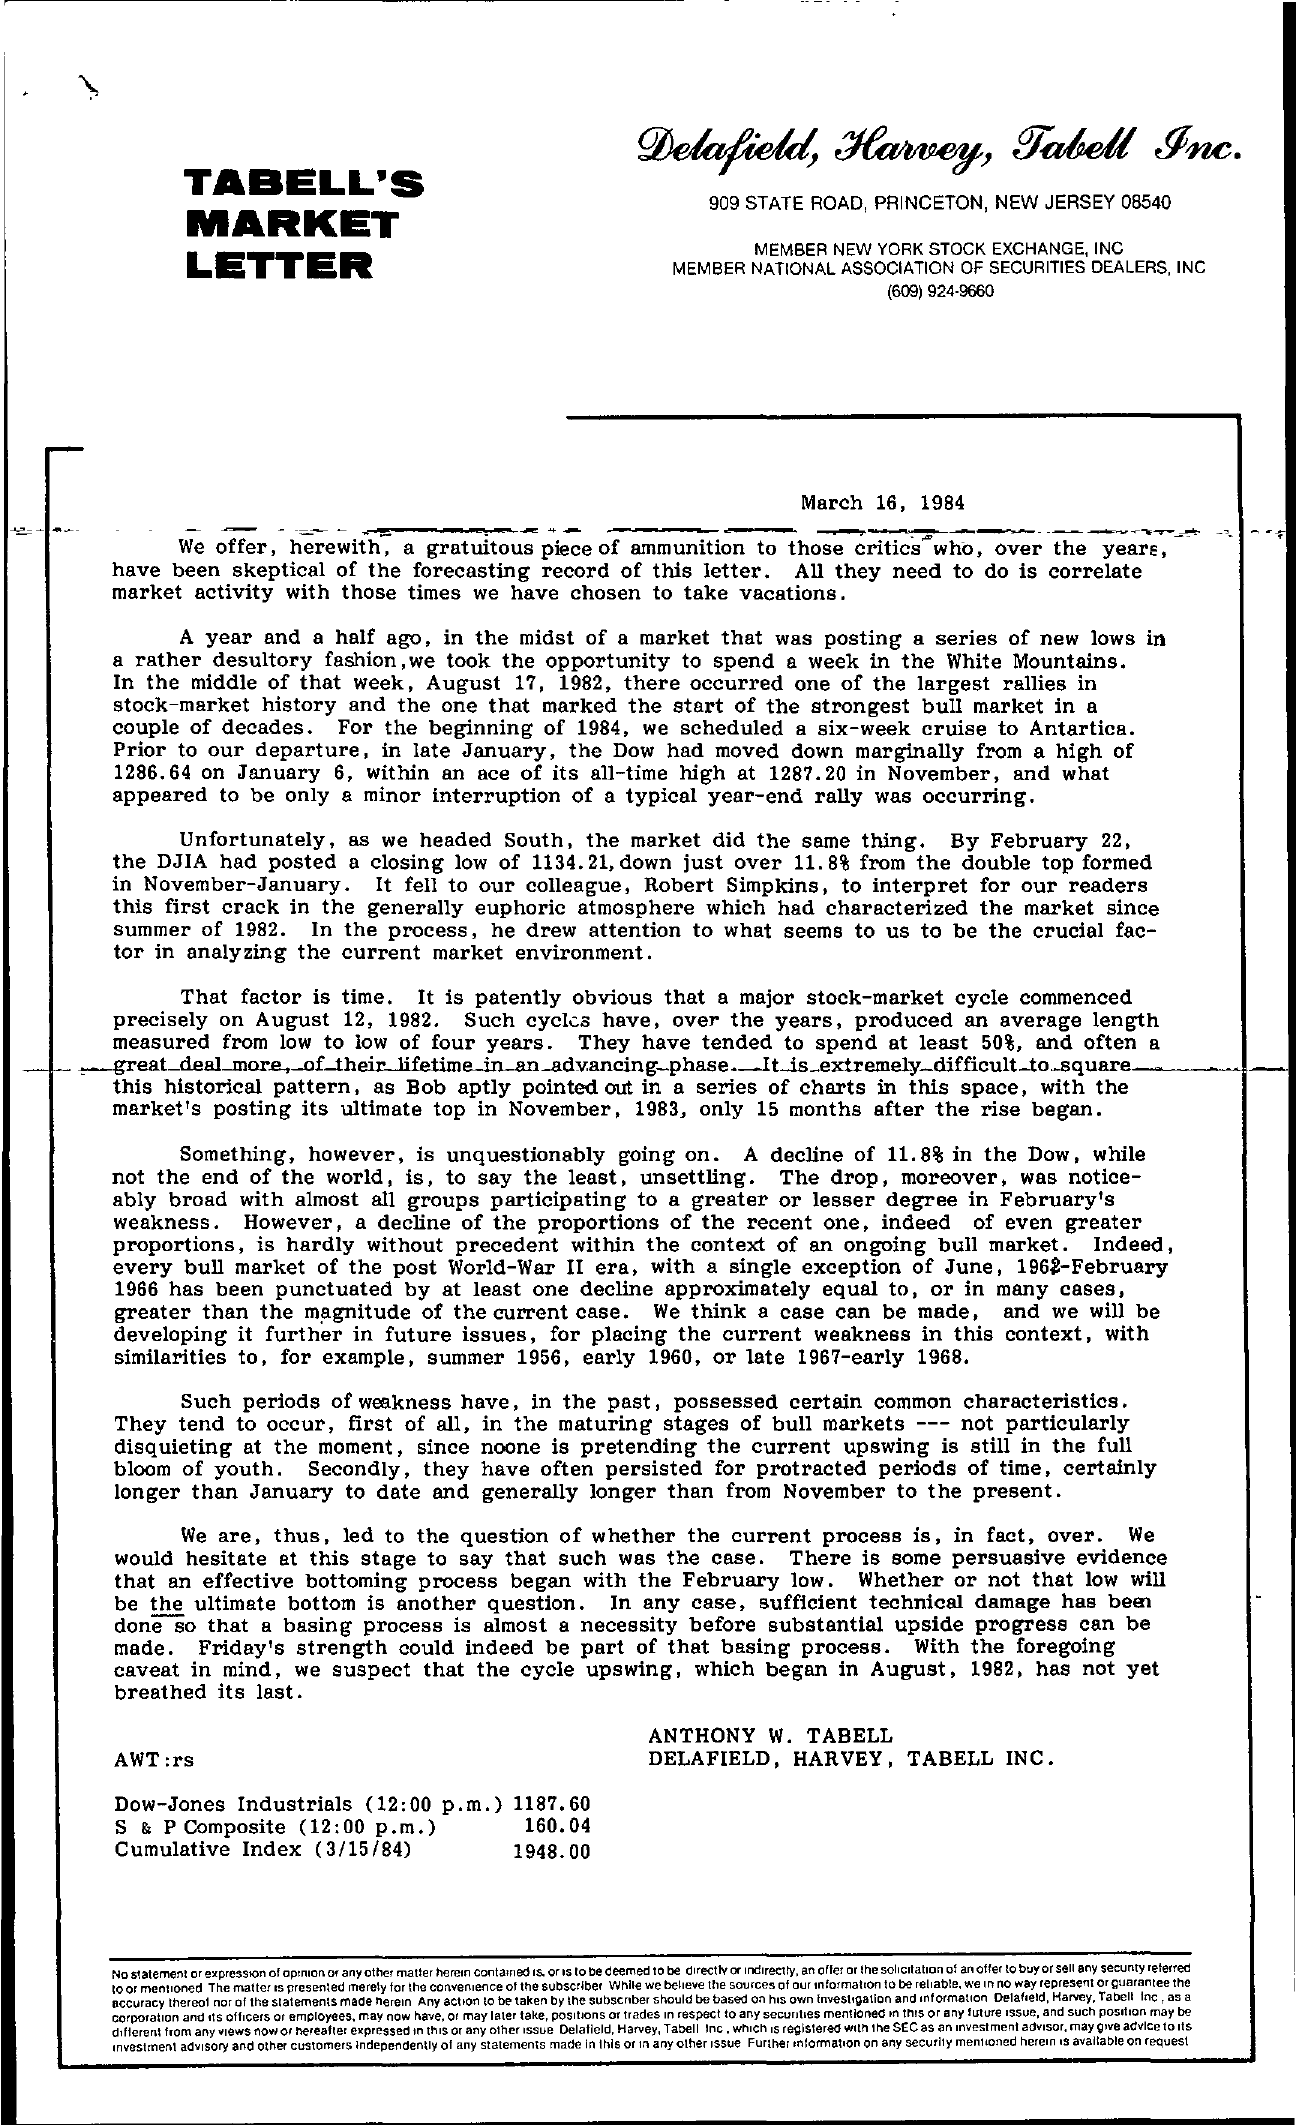 Tabell's Market Letter - March 16, 1984